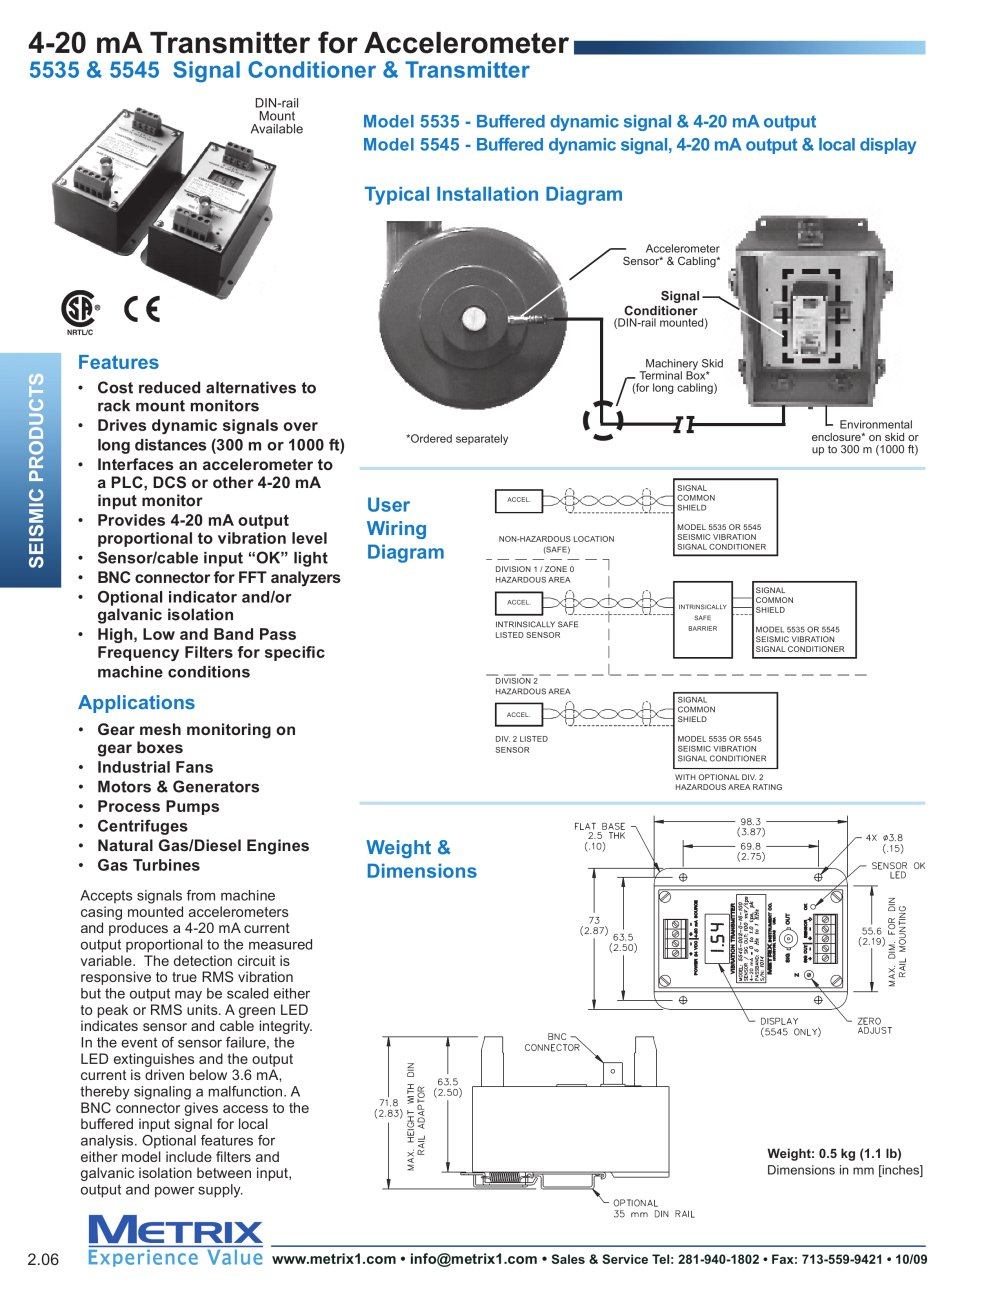 5535 5545 Signal Conditioners Metrix Instrument Co Pdf Catalogs Accelerometer Wiring Diagram 1 2 Pages